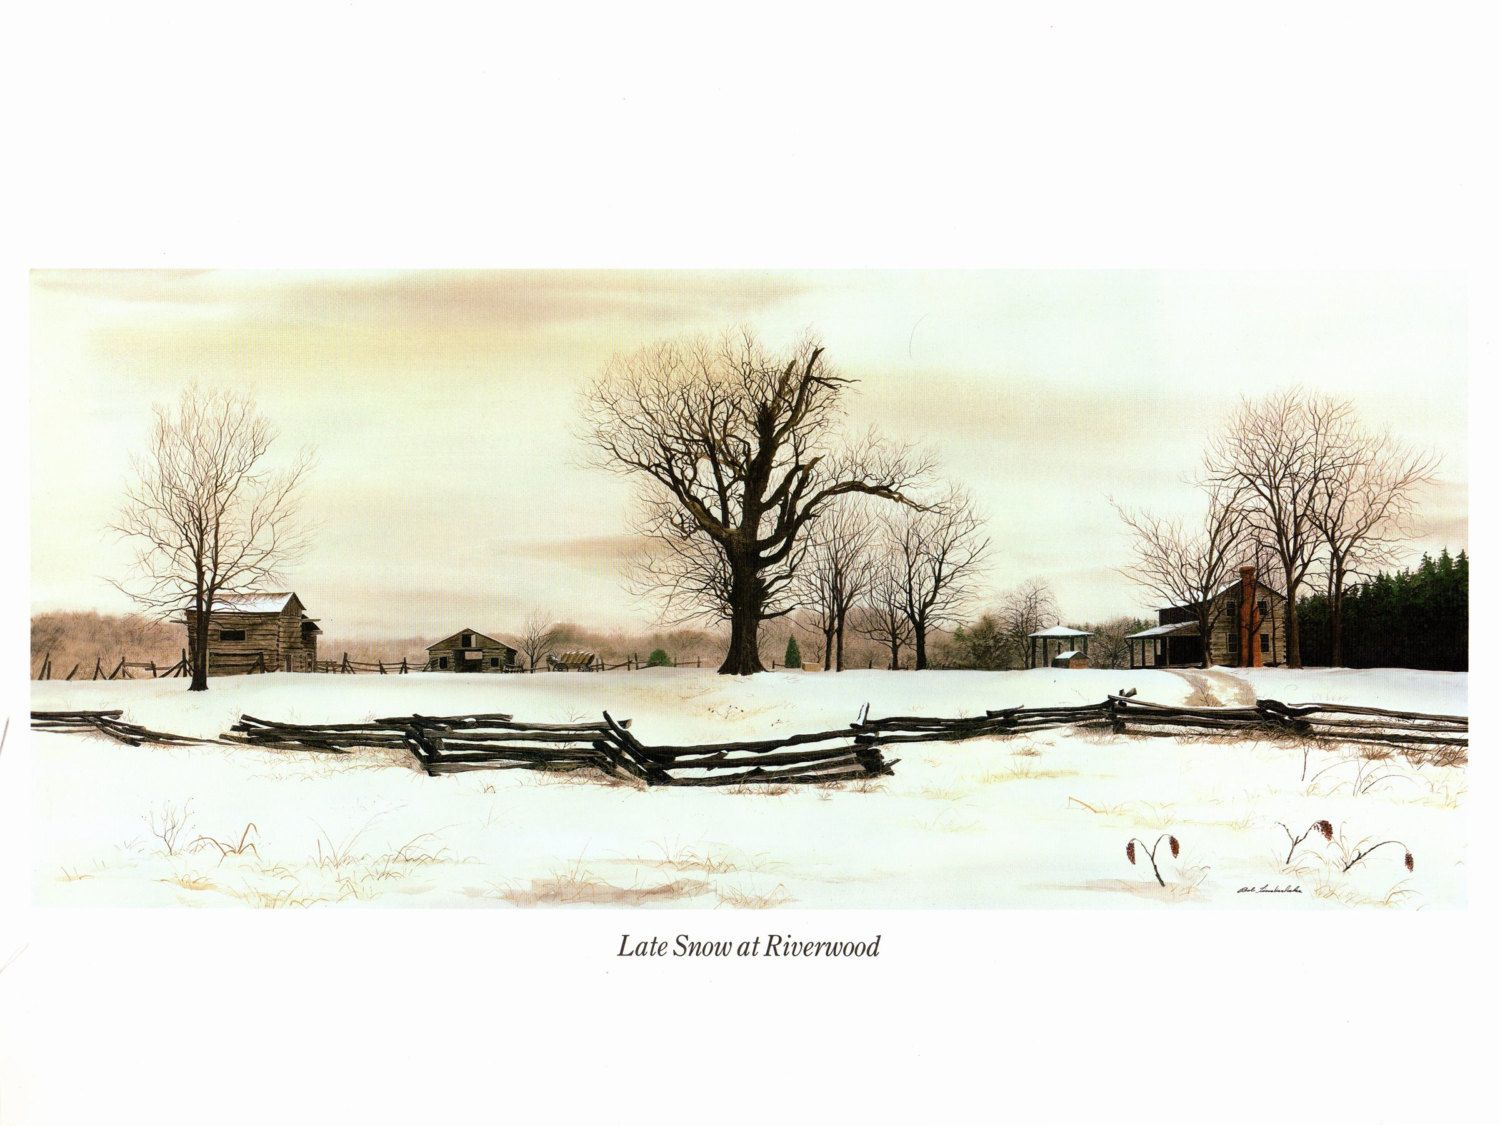 Late Snow at Riverwood painted by Bob Timberlake for the book ...